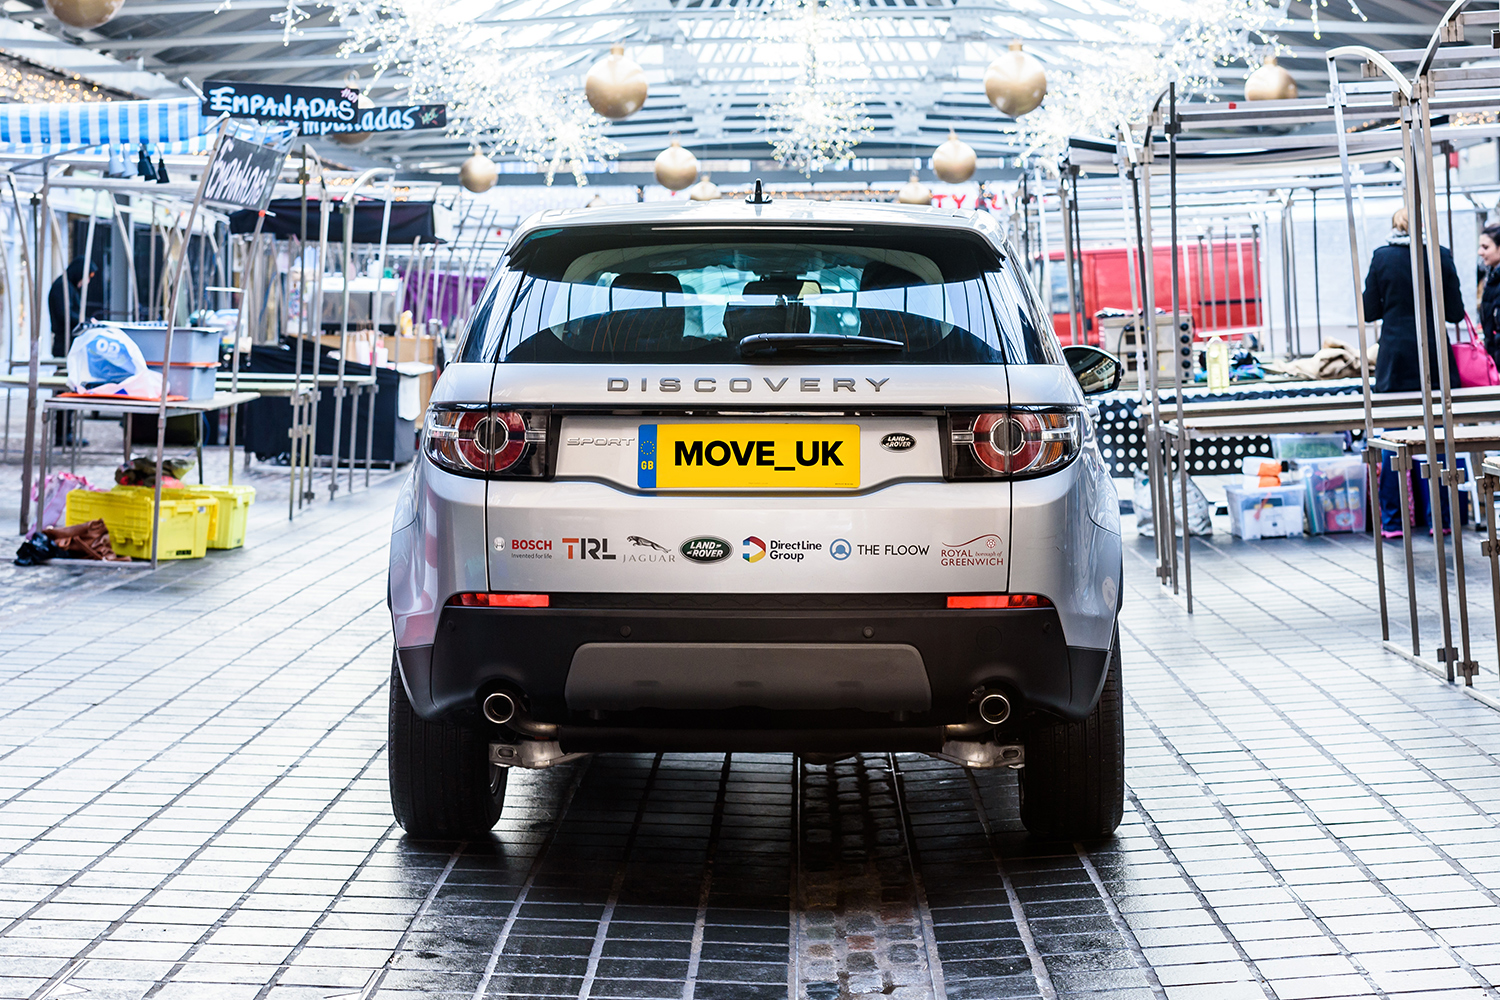 MOVE_UK: Collaborating for a Safe, Autonomous Future